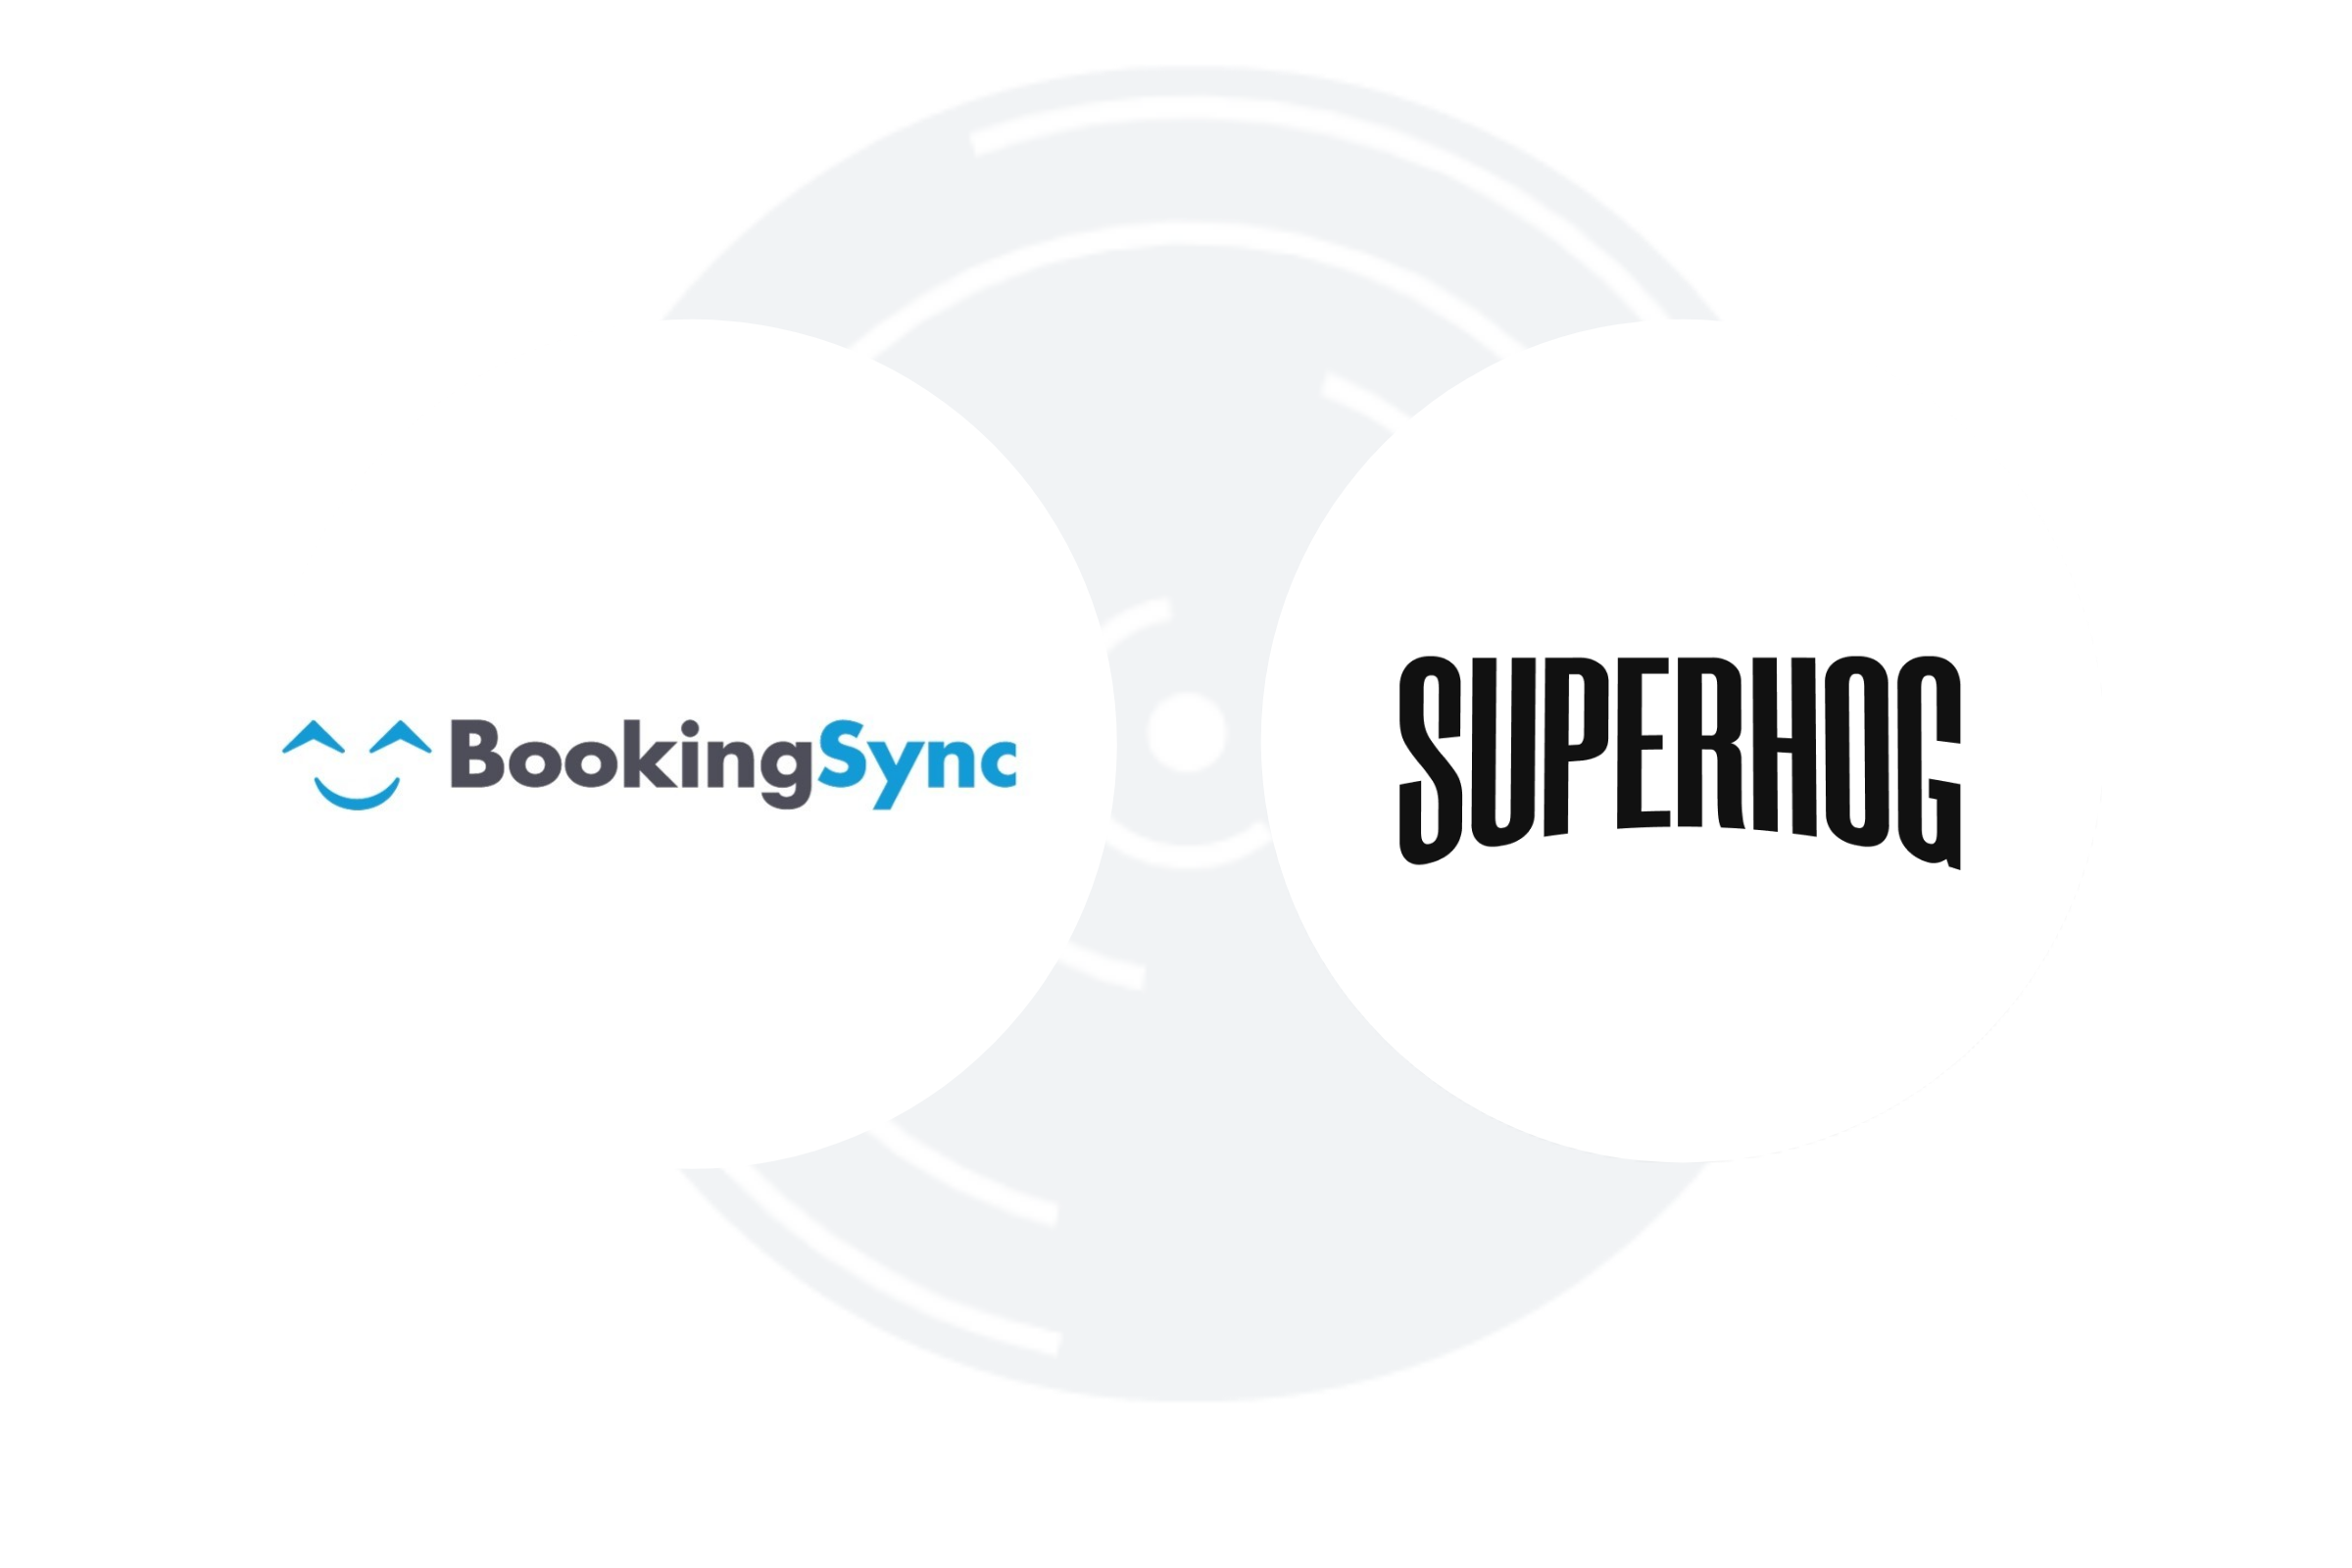 BookingSync and SUPERHOG offer